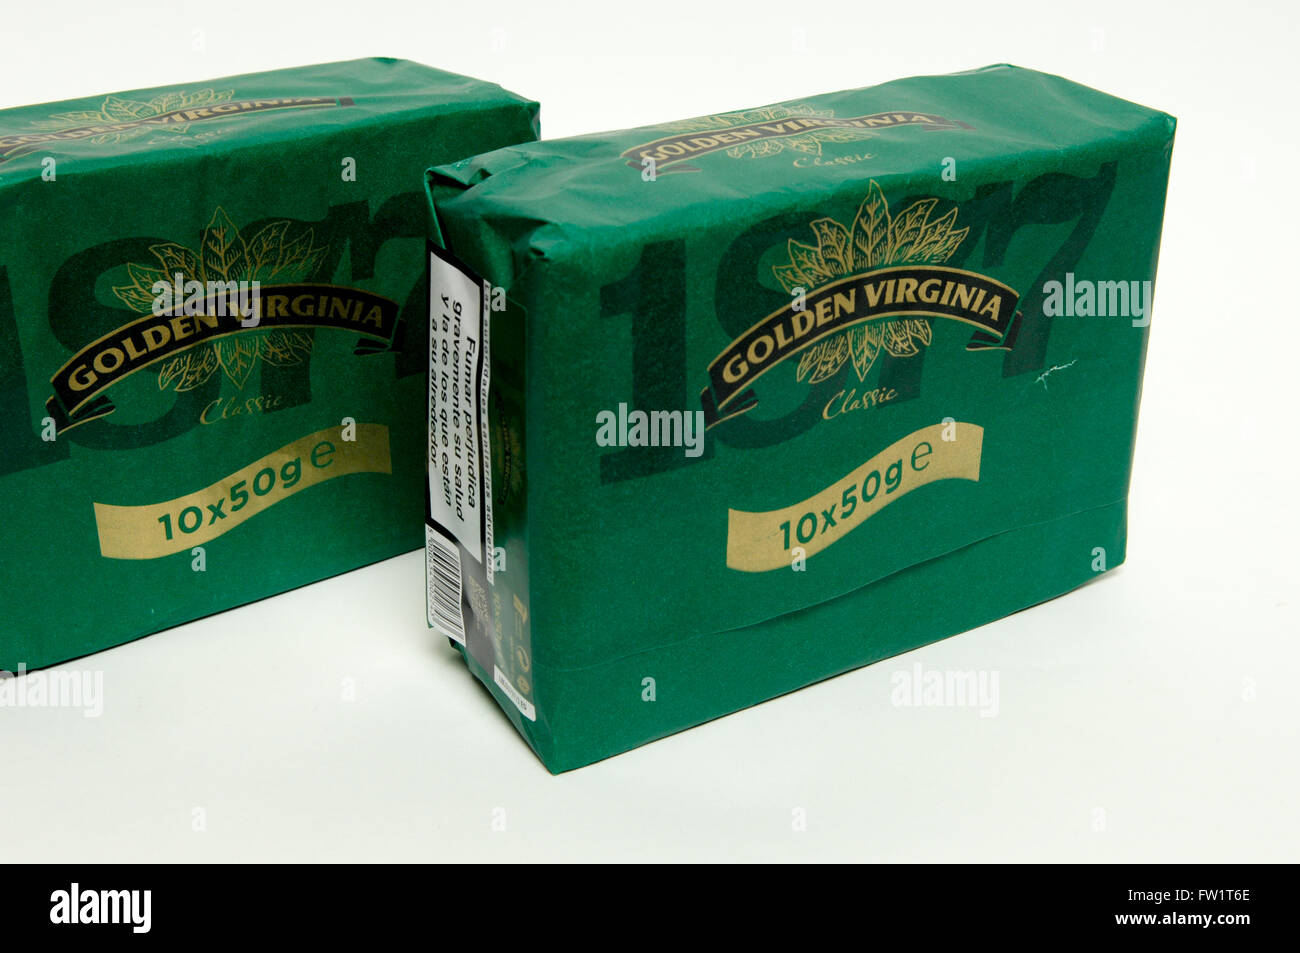 How much do Lucky Strike cigarettes cost in UK